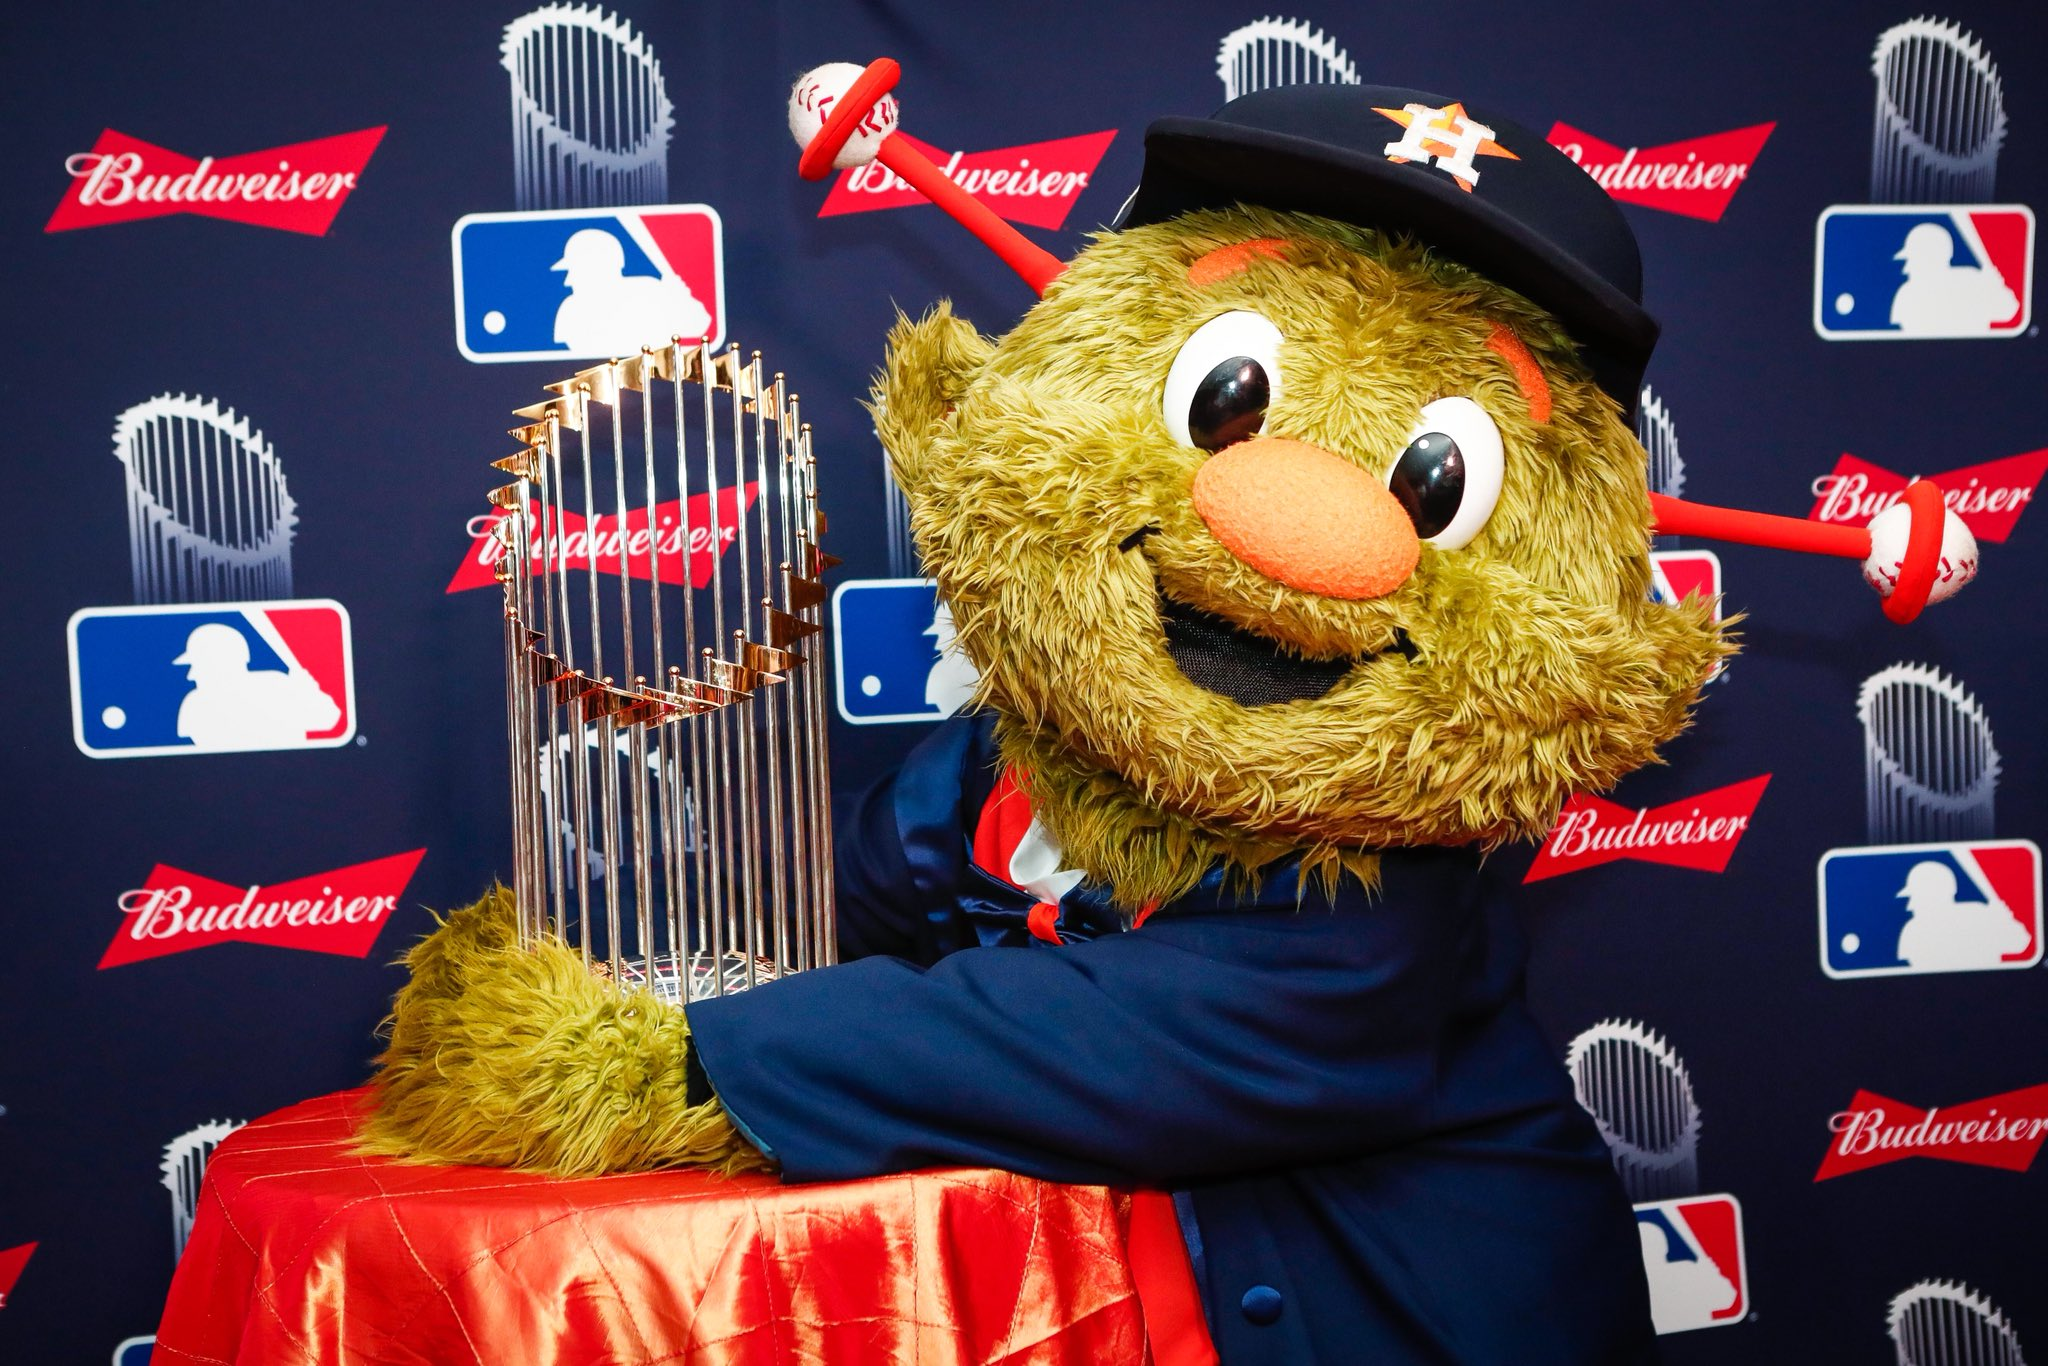 Never let go, @OrbitAstros. �� https://t.co/AeRI4YydVS